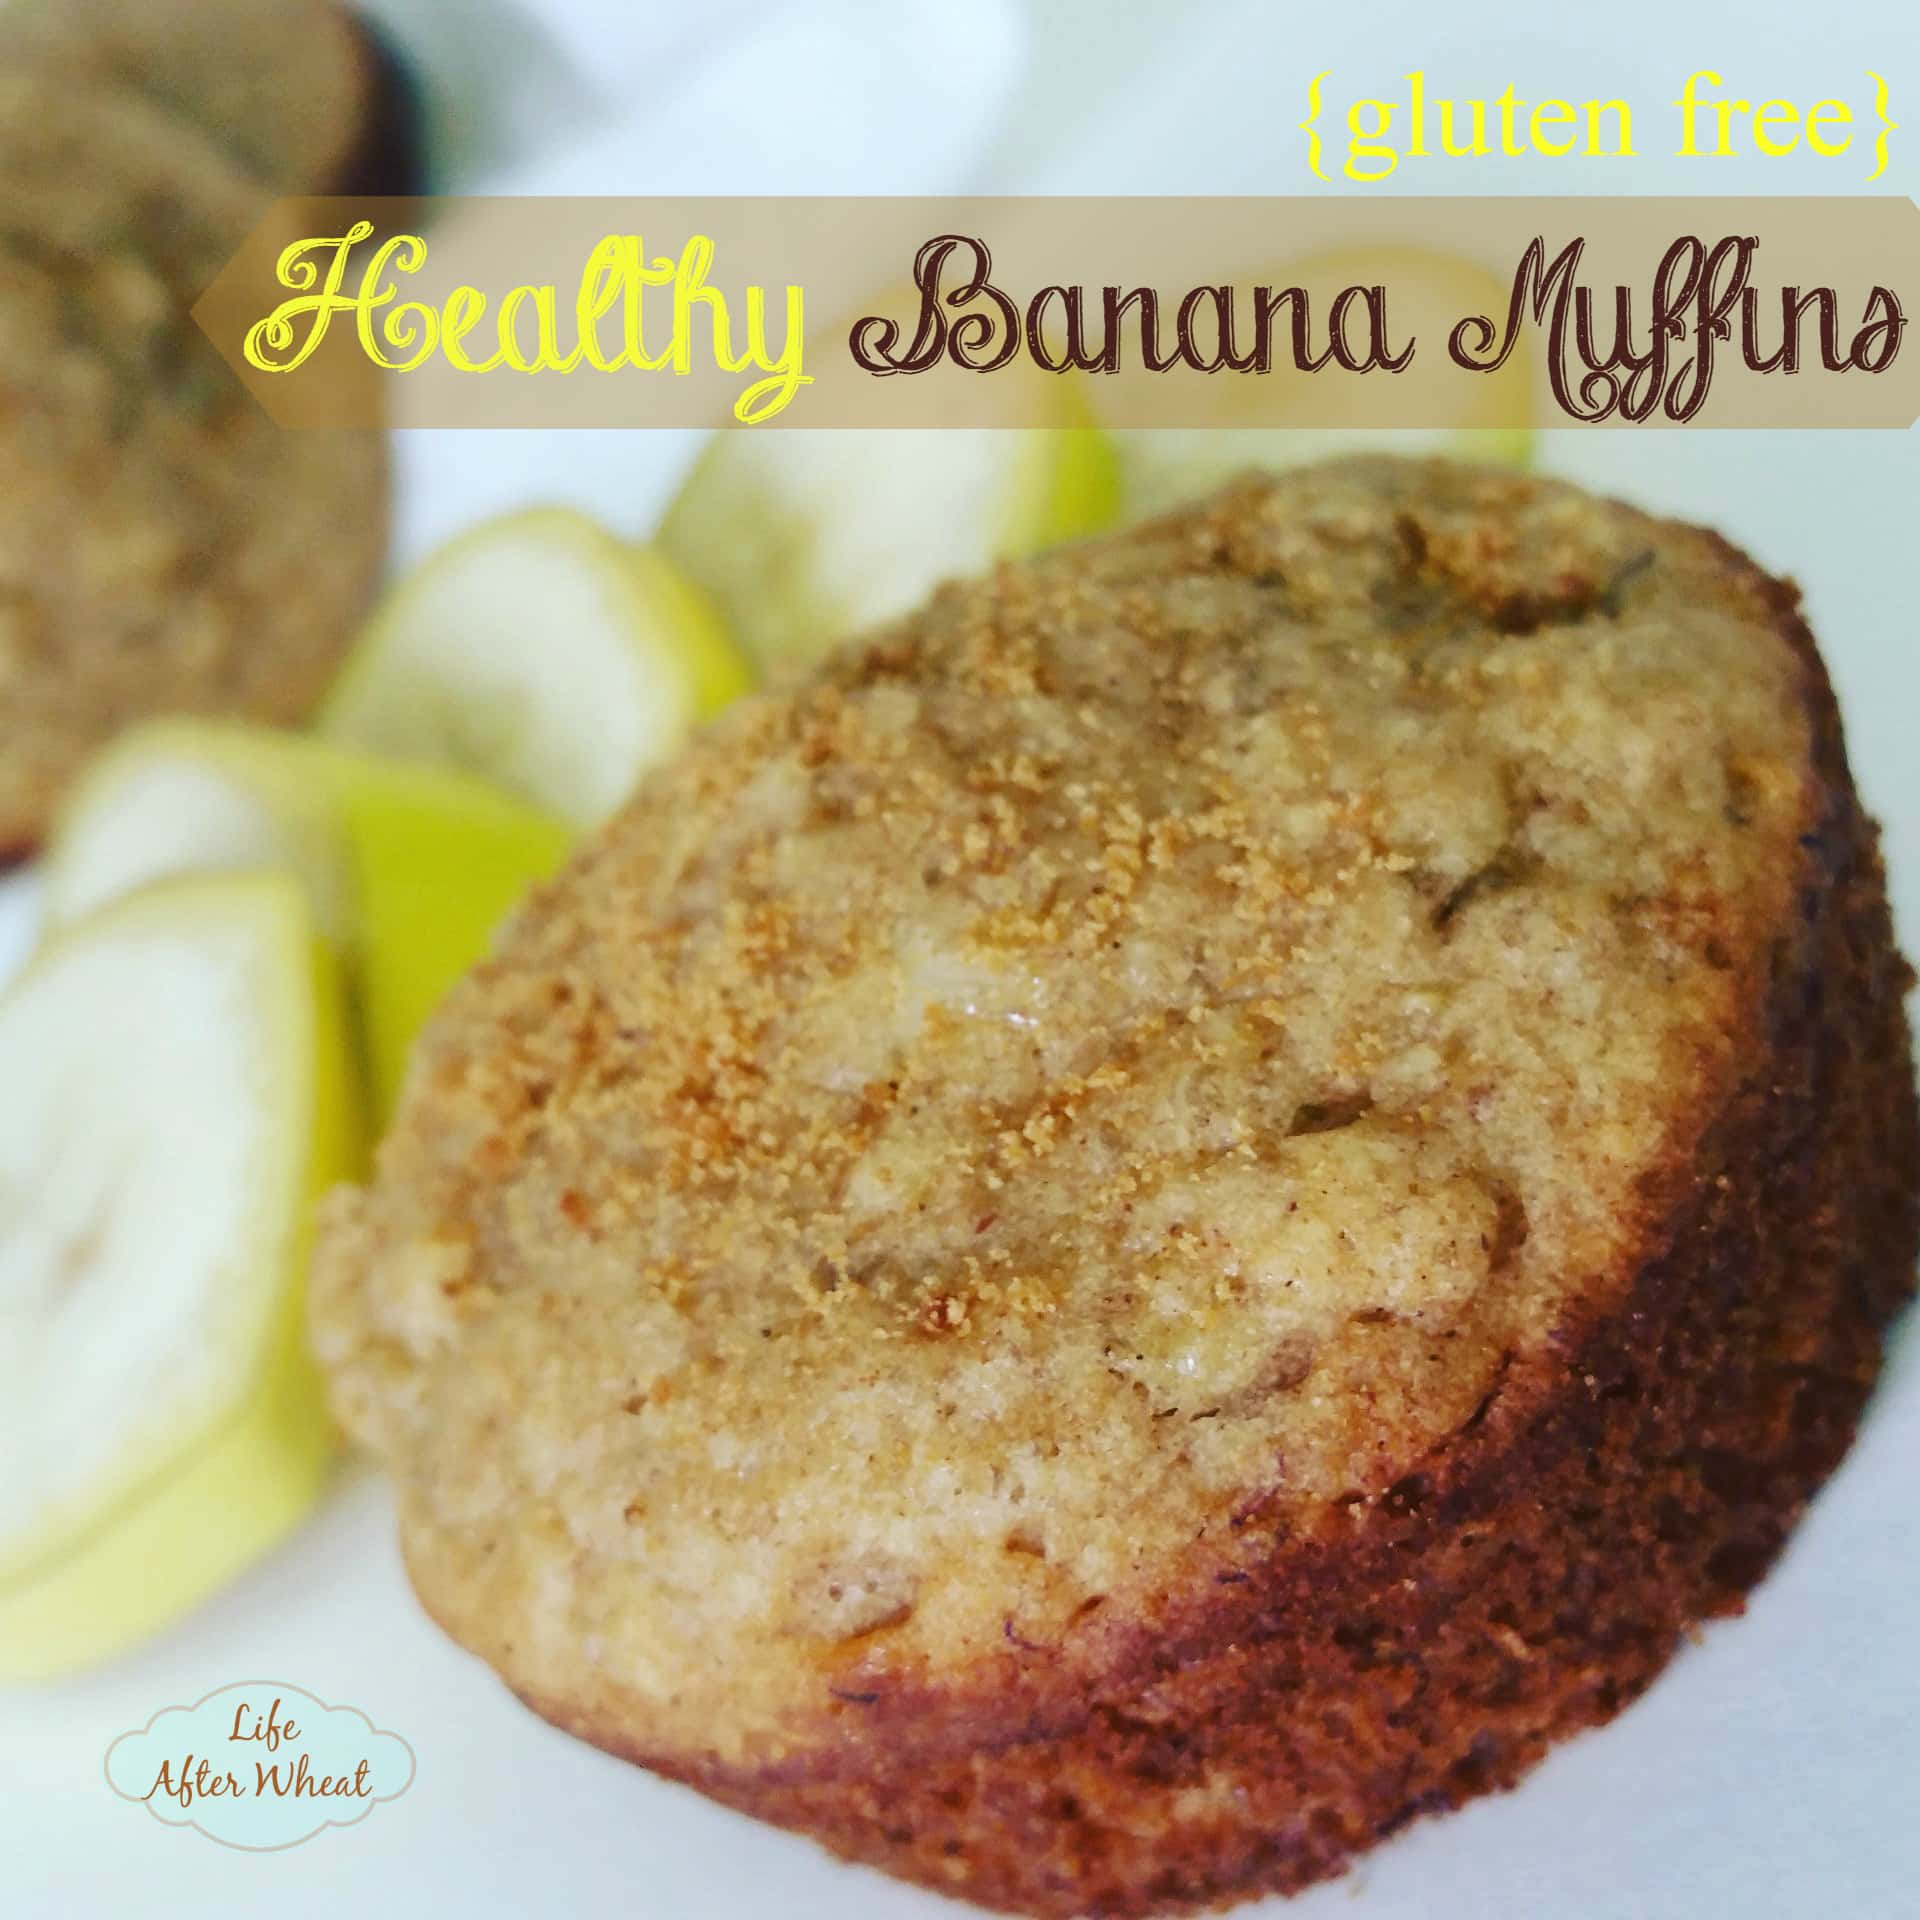 These Healthy (gluten free!) Banana Muffins are naturally sweetened with honey and bananas, and contain a secret ingredient that gives them a protein boost.